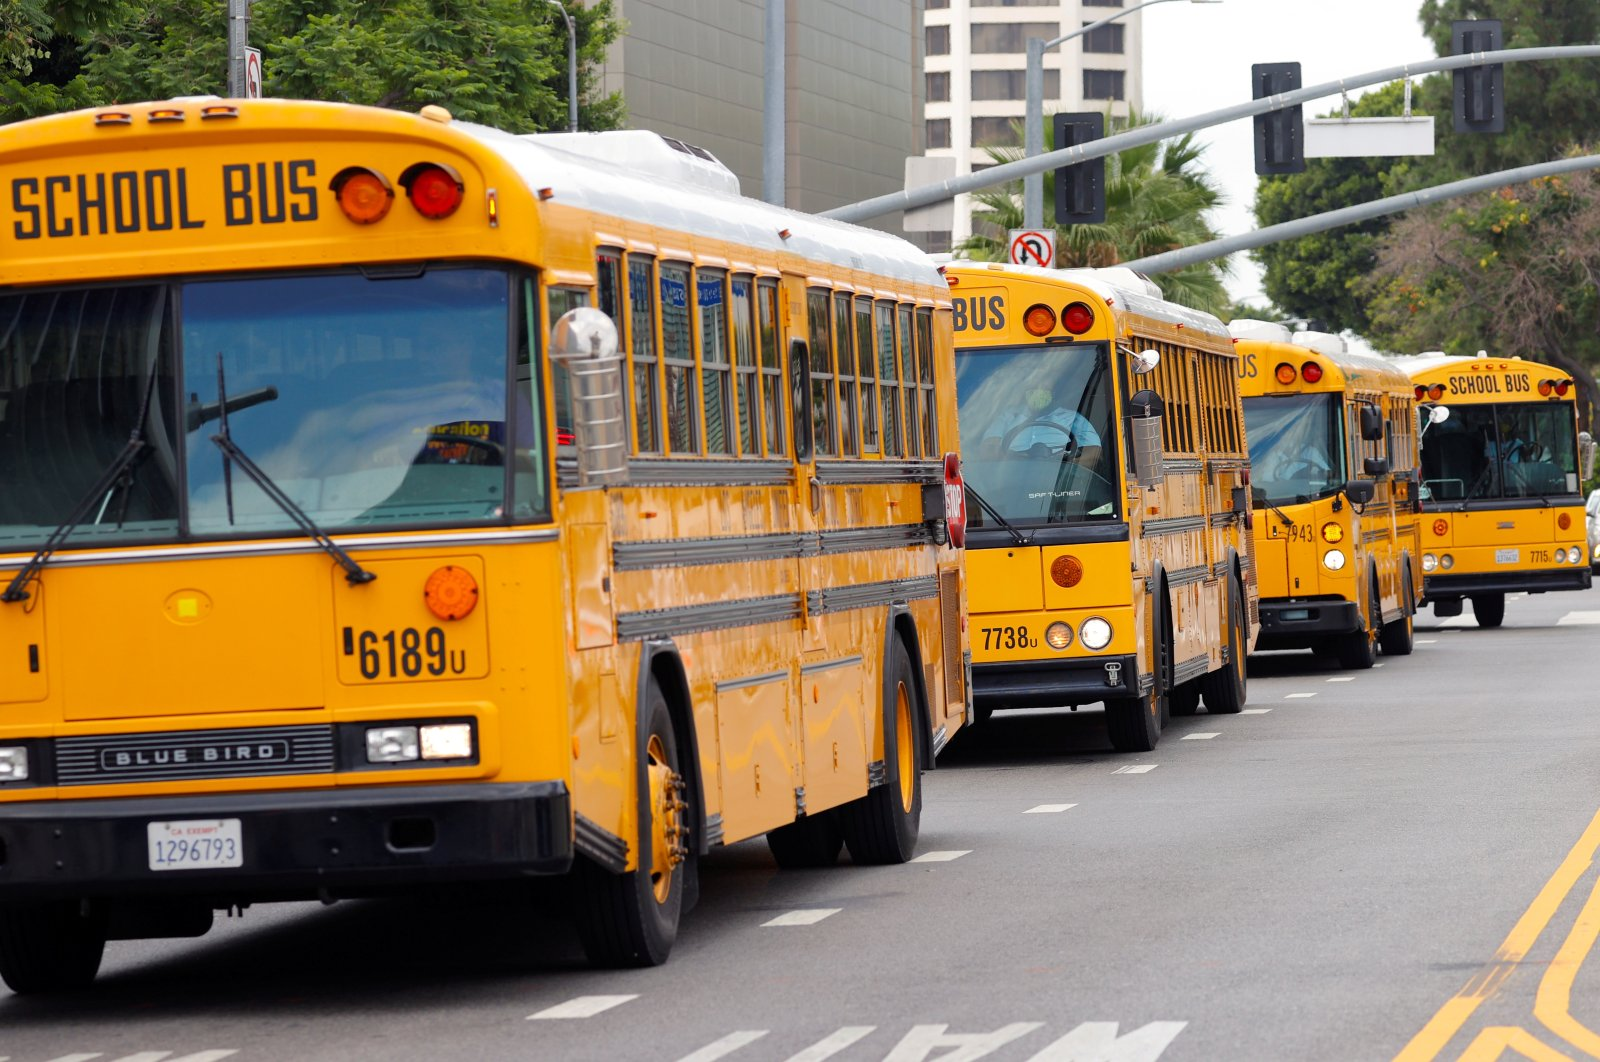 School buses line up on the streets of downtown Los Angeles, California, U.S., Aug. 13, 2020. (Reuters Photo)